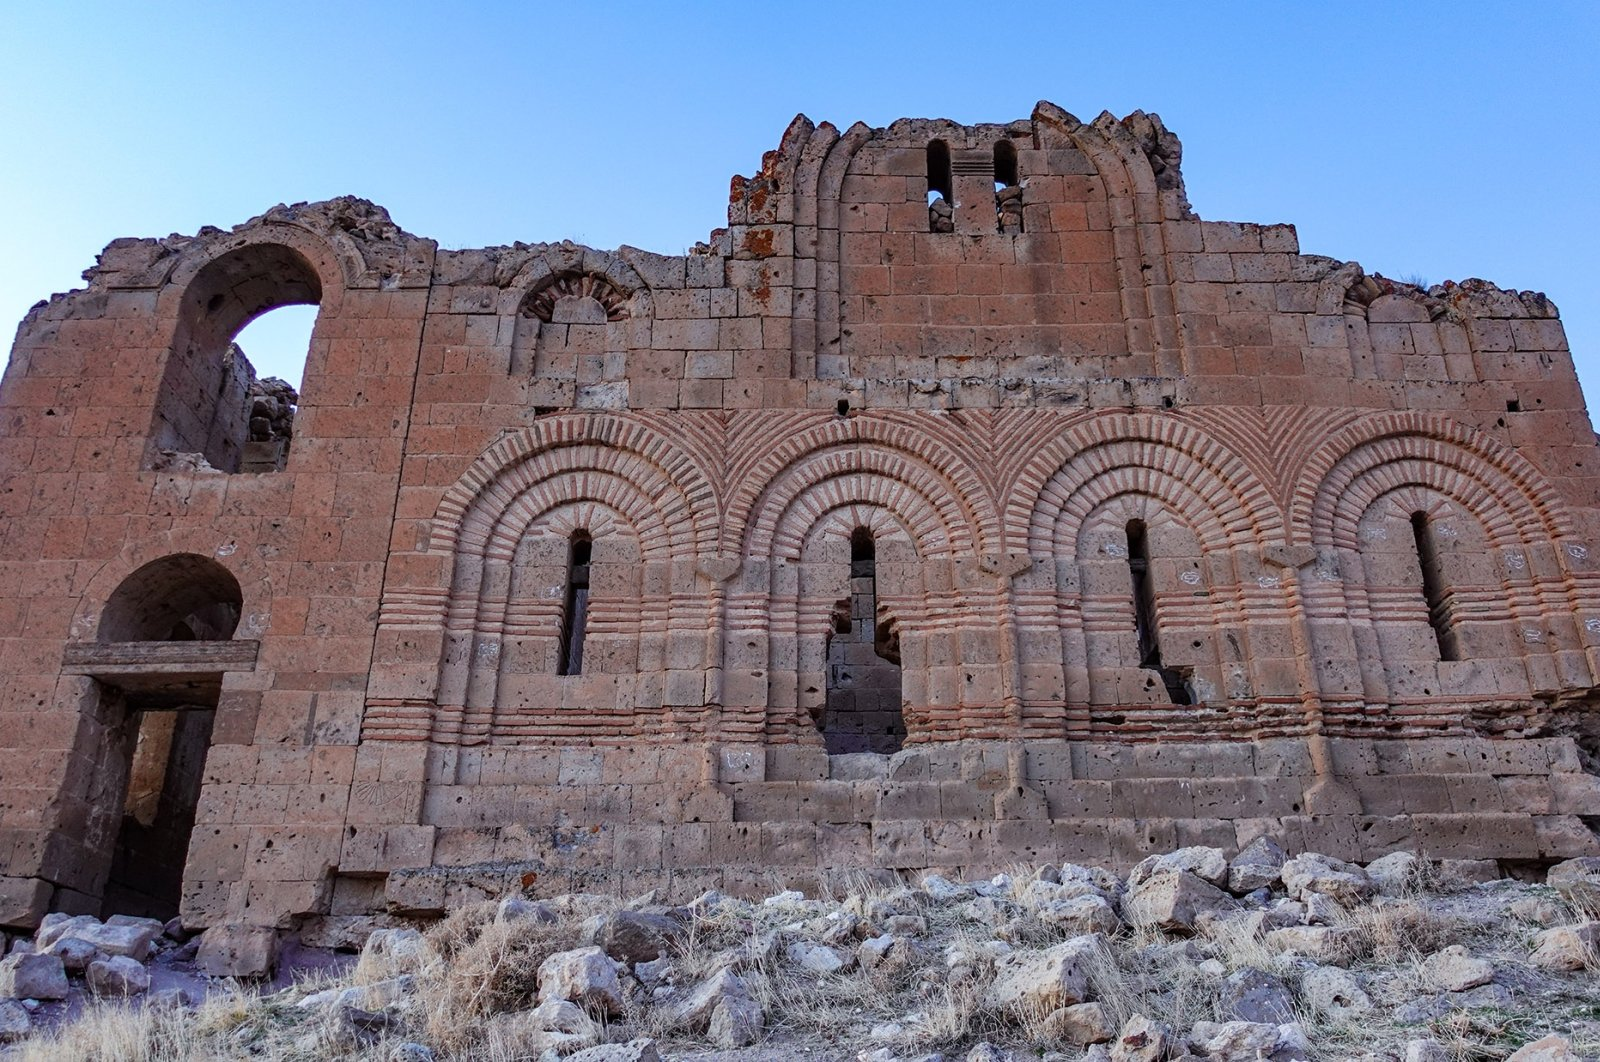 The Bell Church is one of the main attractions at the ancient city of Mokissos in Aksaray province, central Turkey. (Photo by Argun Konuk)